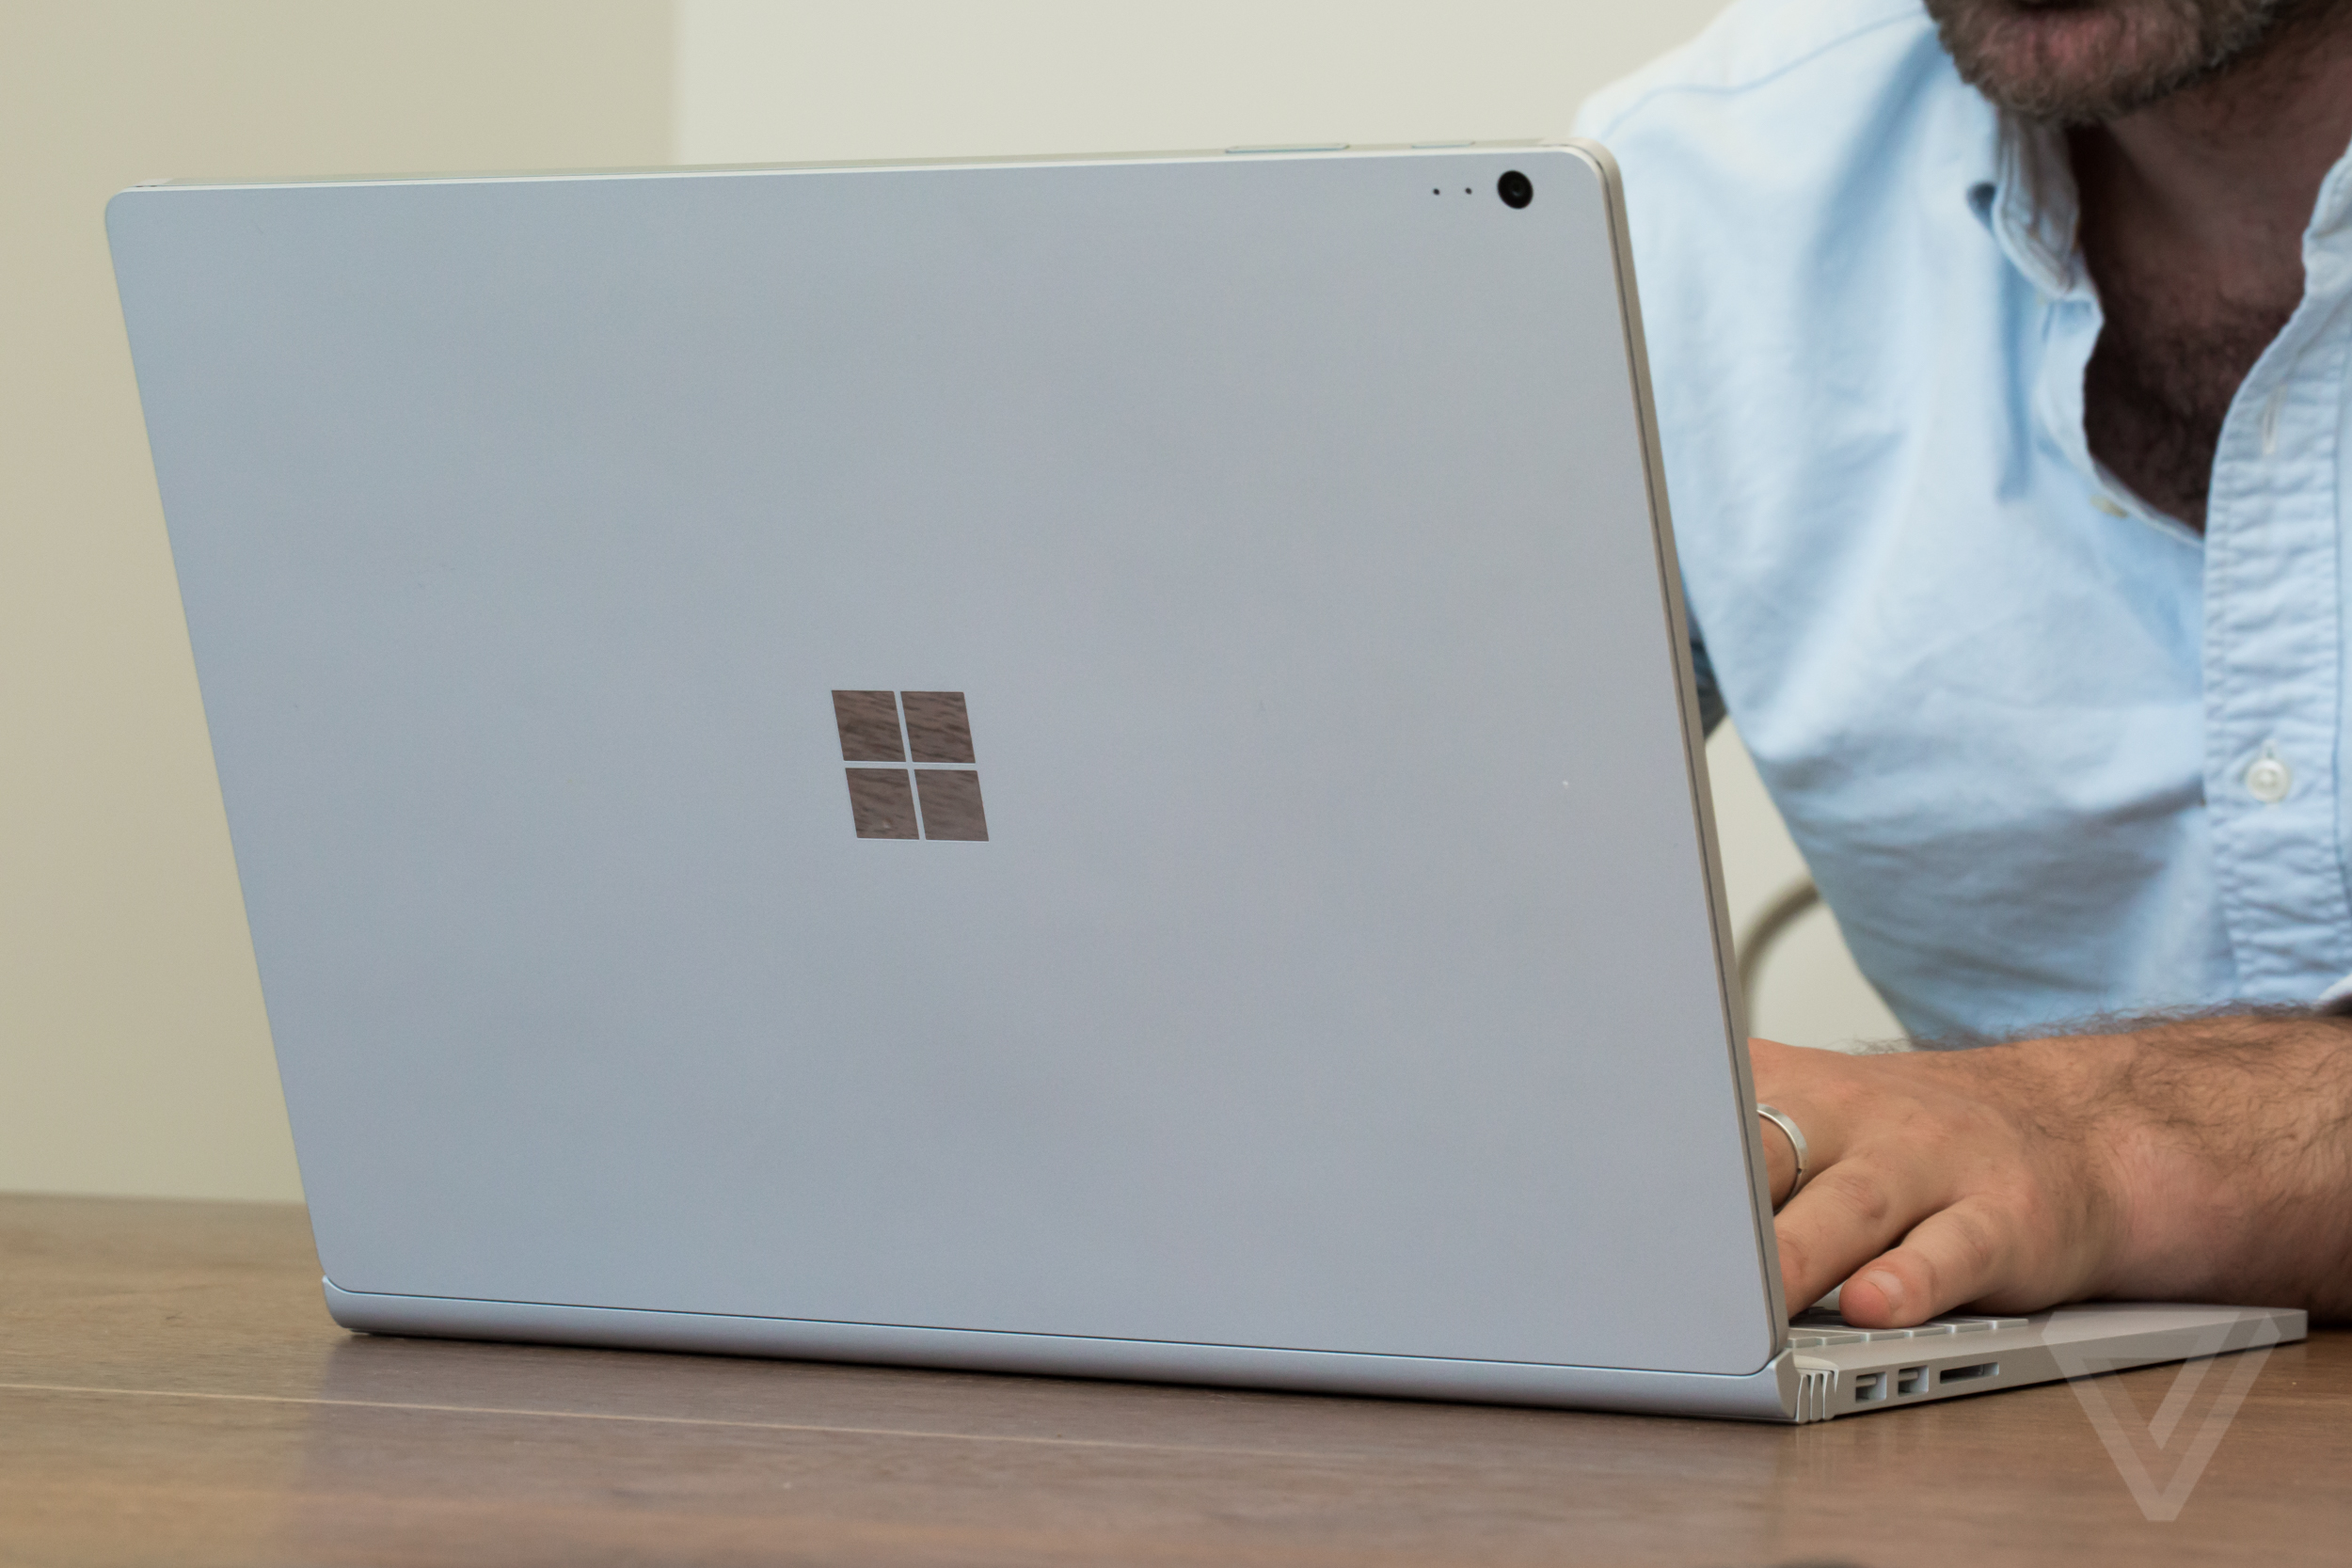 Microsoft is now selling more powerful Surface Book and Surface Pro 4 models